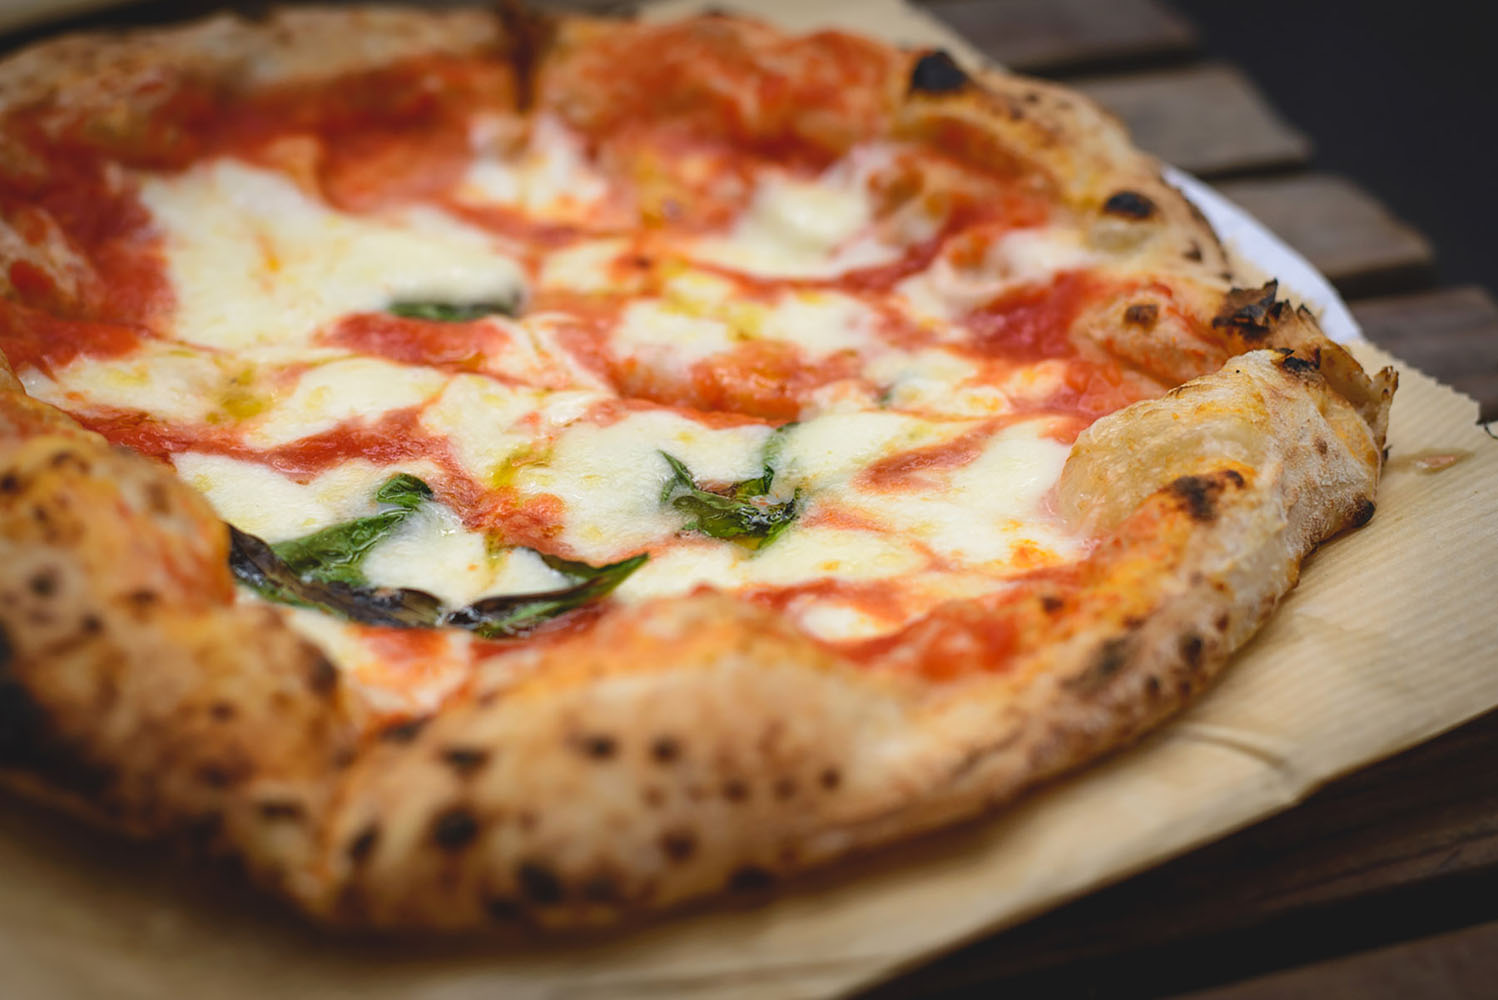 Margherita Neapolitan style pizza with buffalo mozzarella, tomato sauce and basil